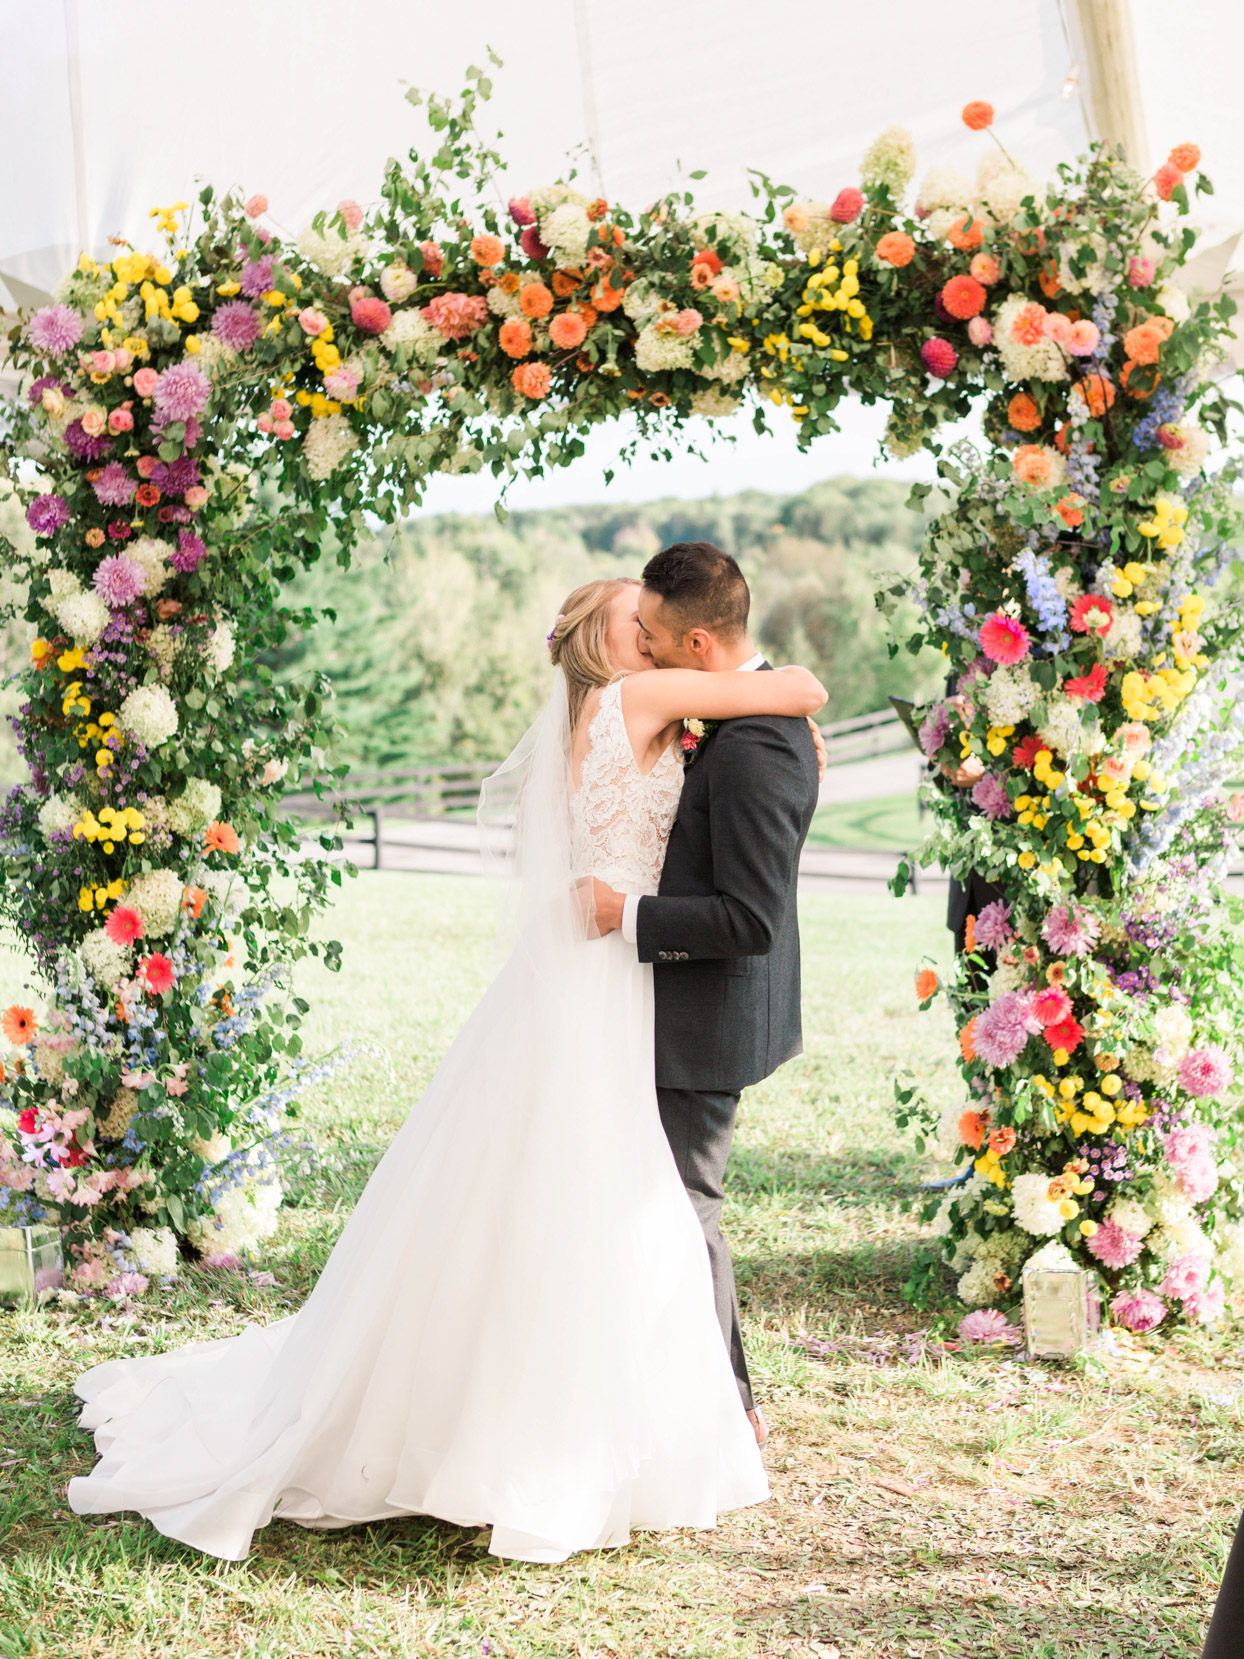 wedding kiss under colorful floral arch